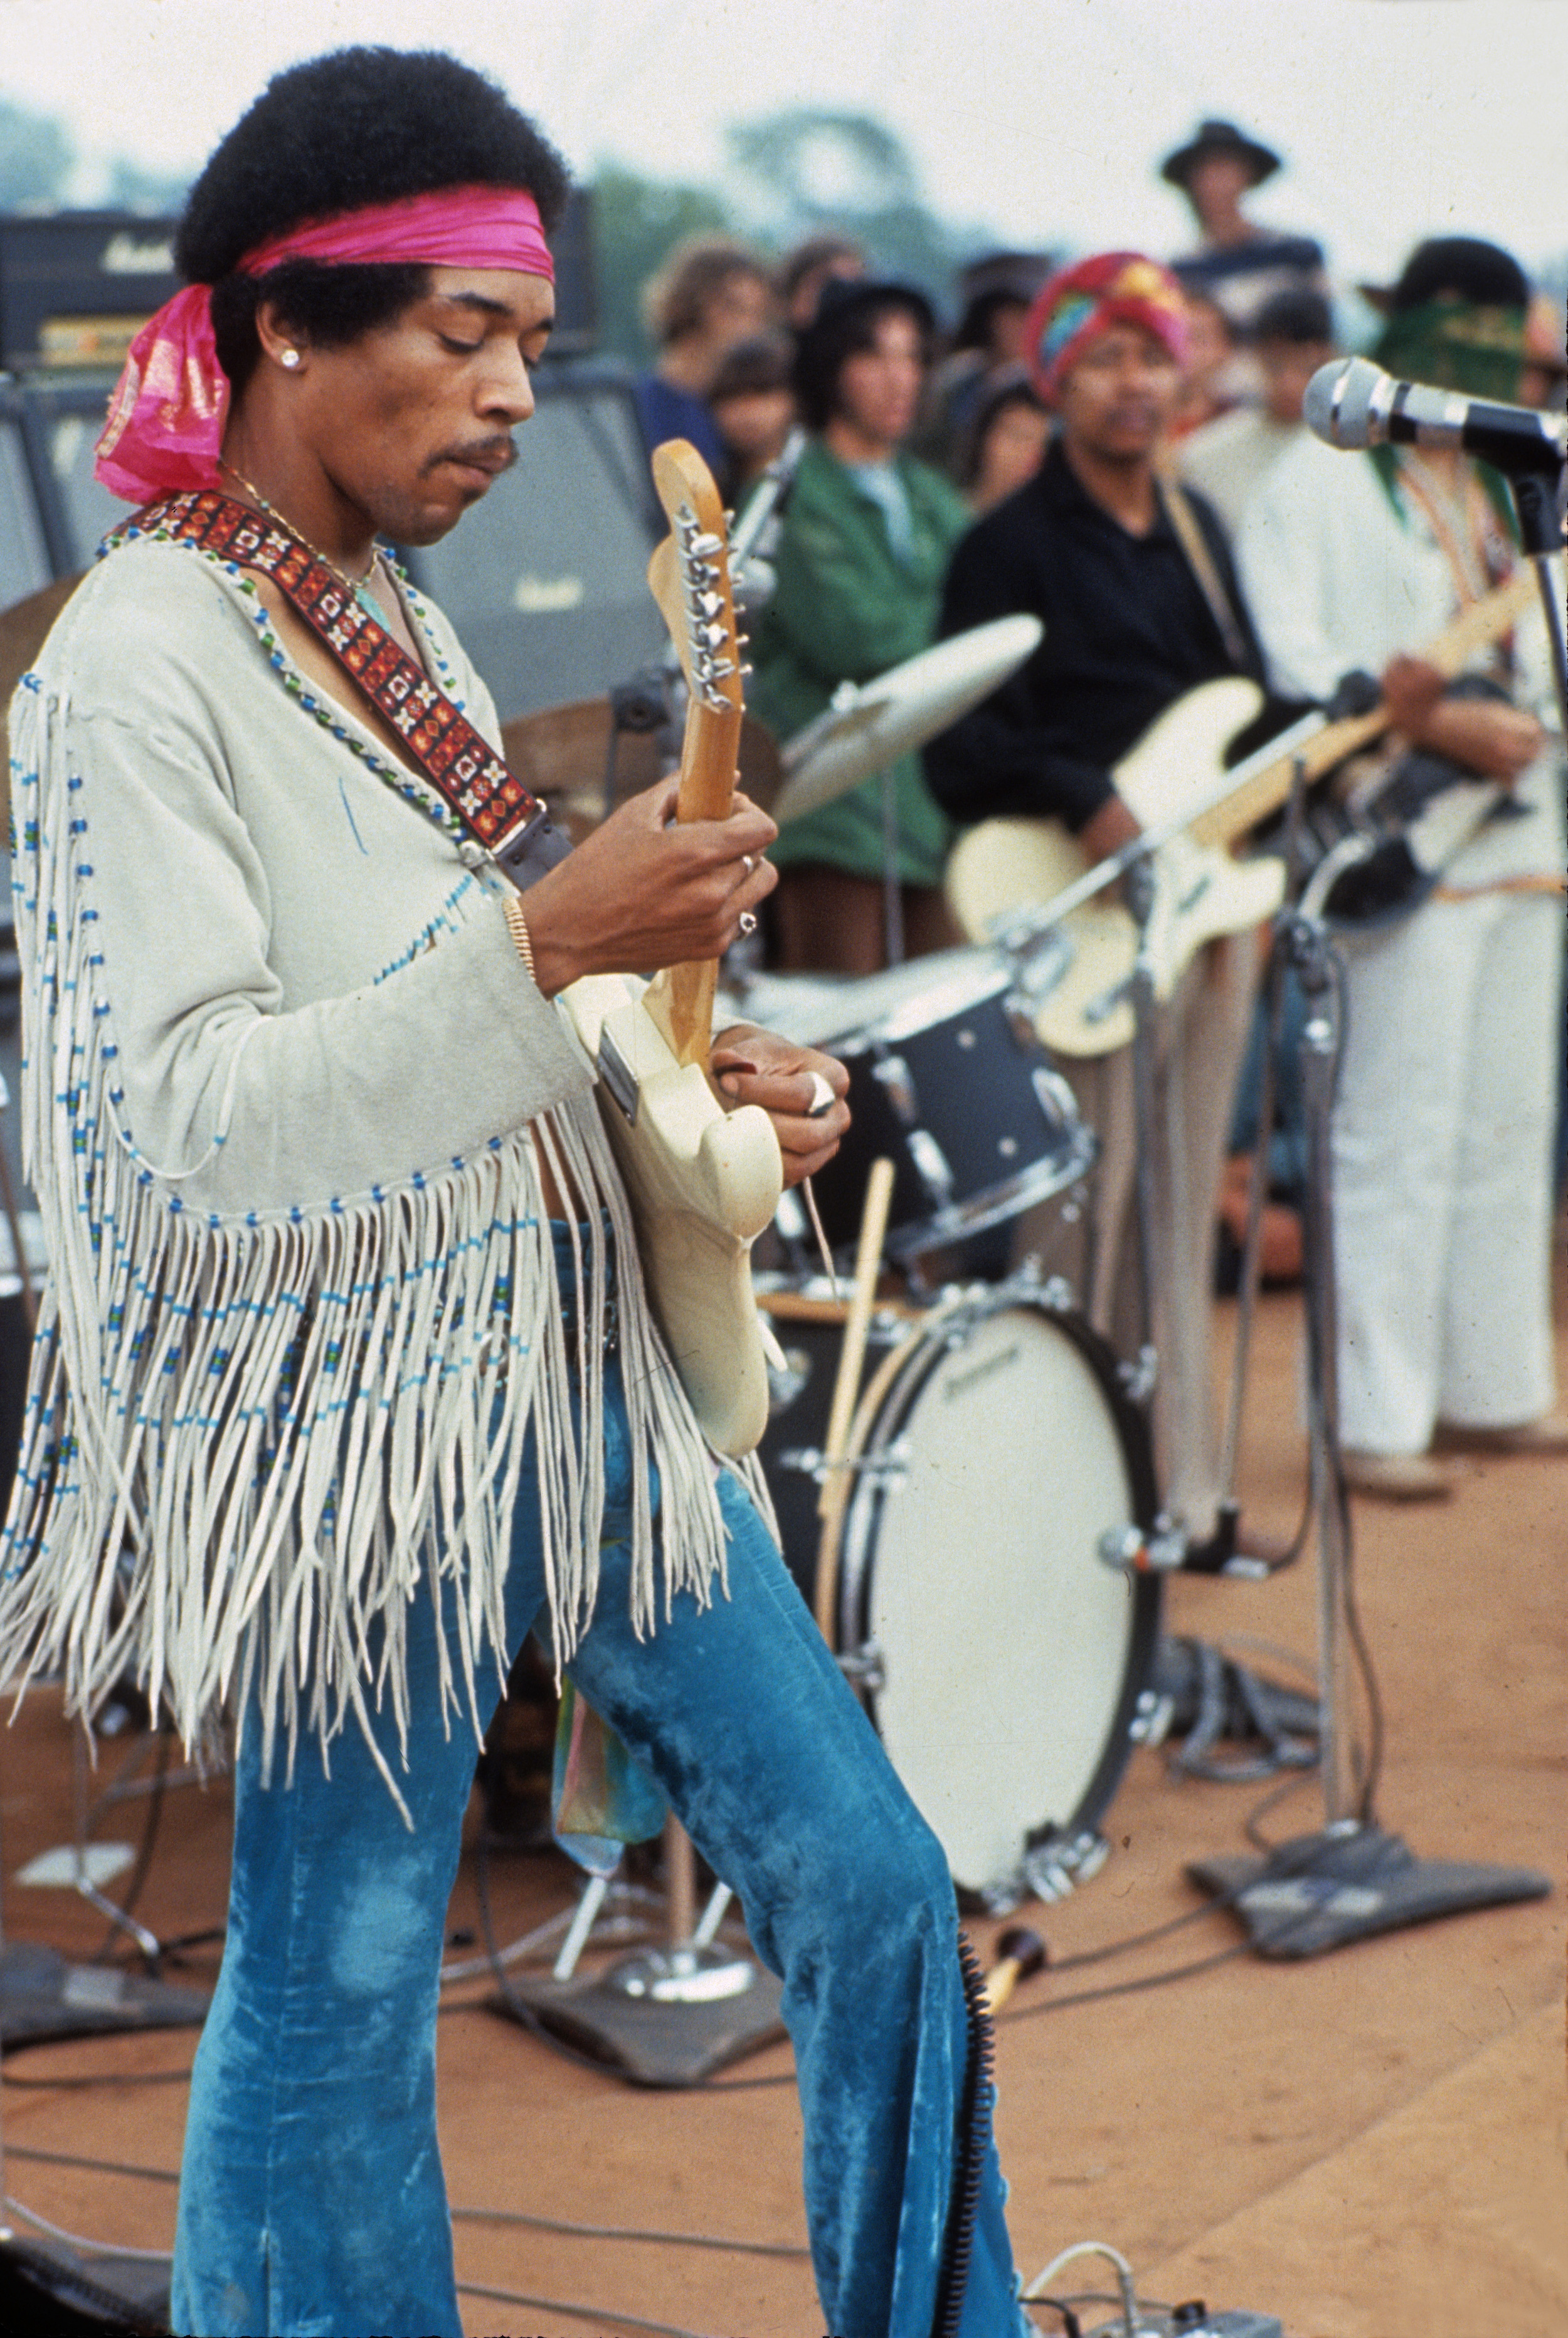 flickr.com    Jimi Hendrix performs his iconic rendition of the National Anthem at Woodstock in 1969.